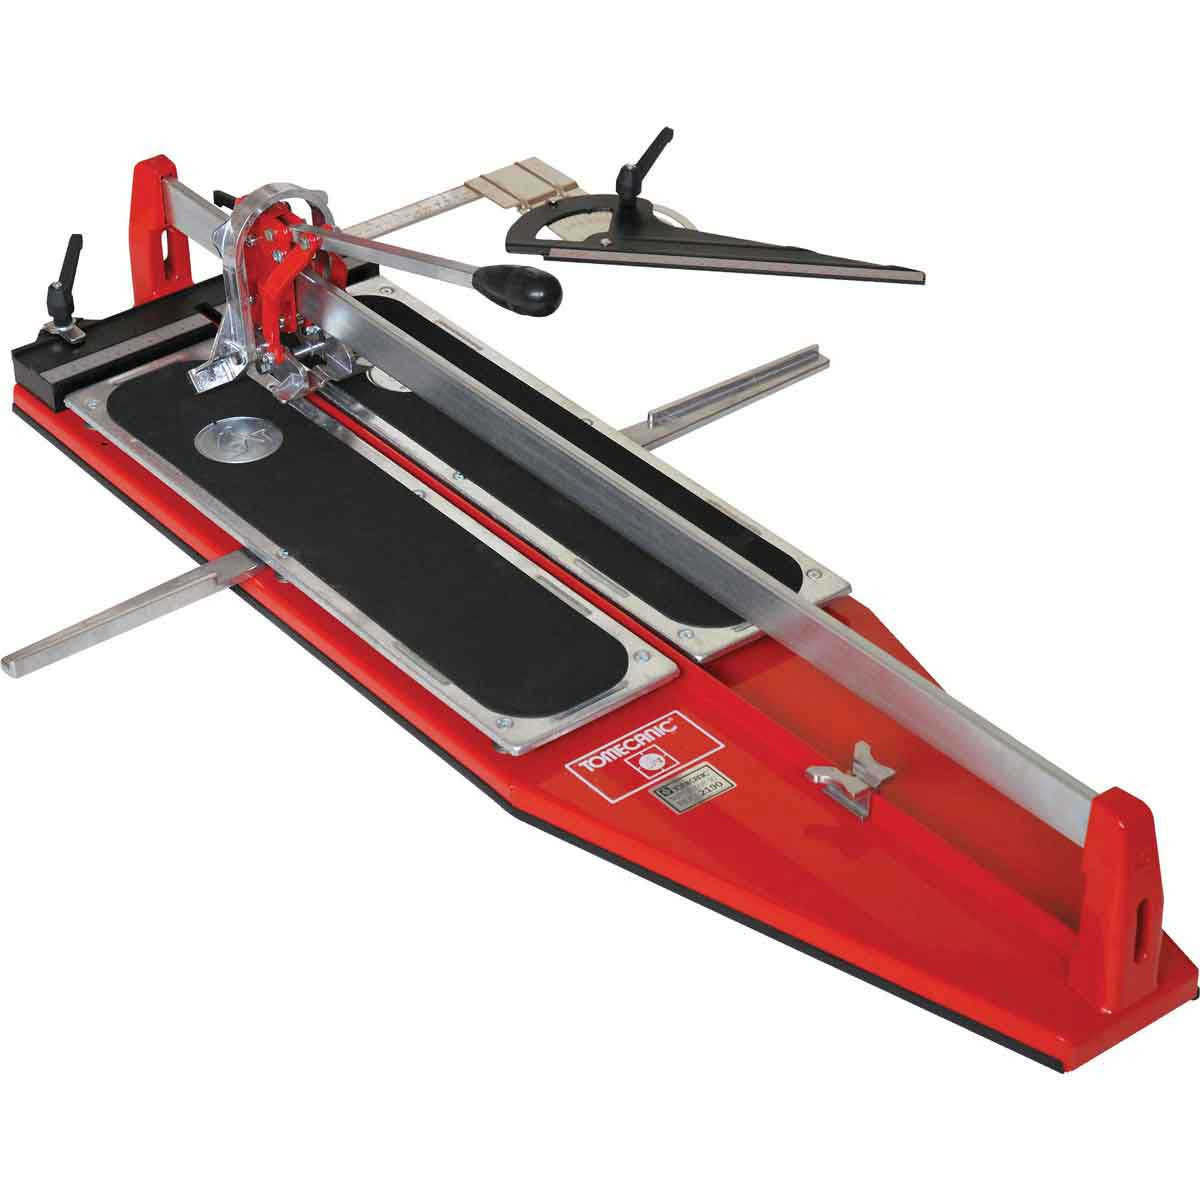 Tomecanic supercut 2190 tile cutter